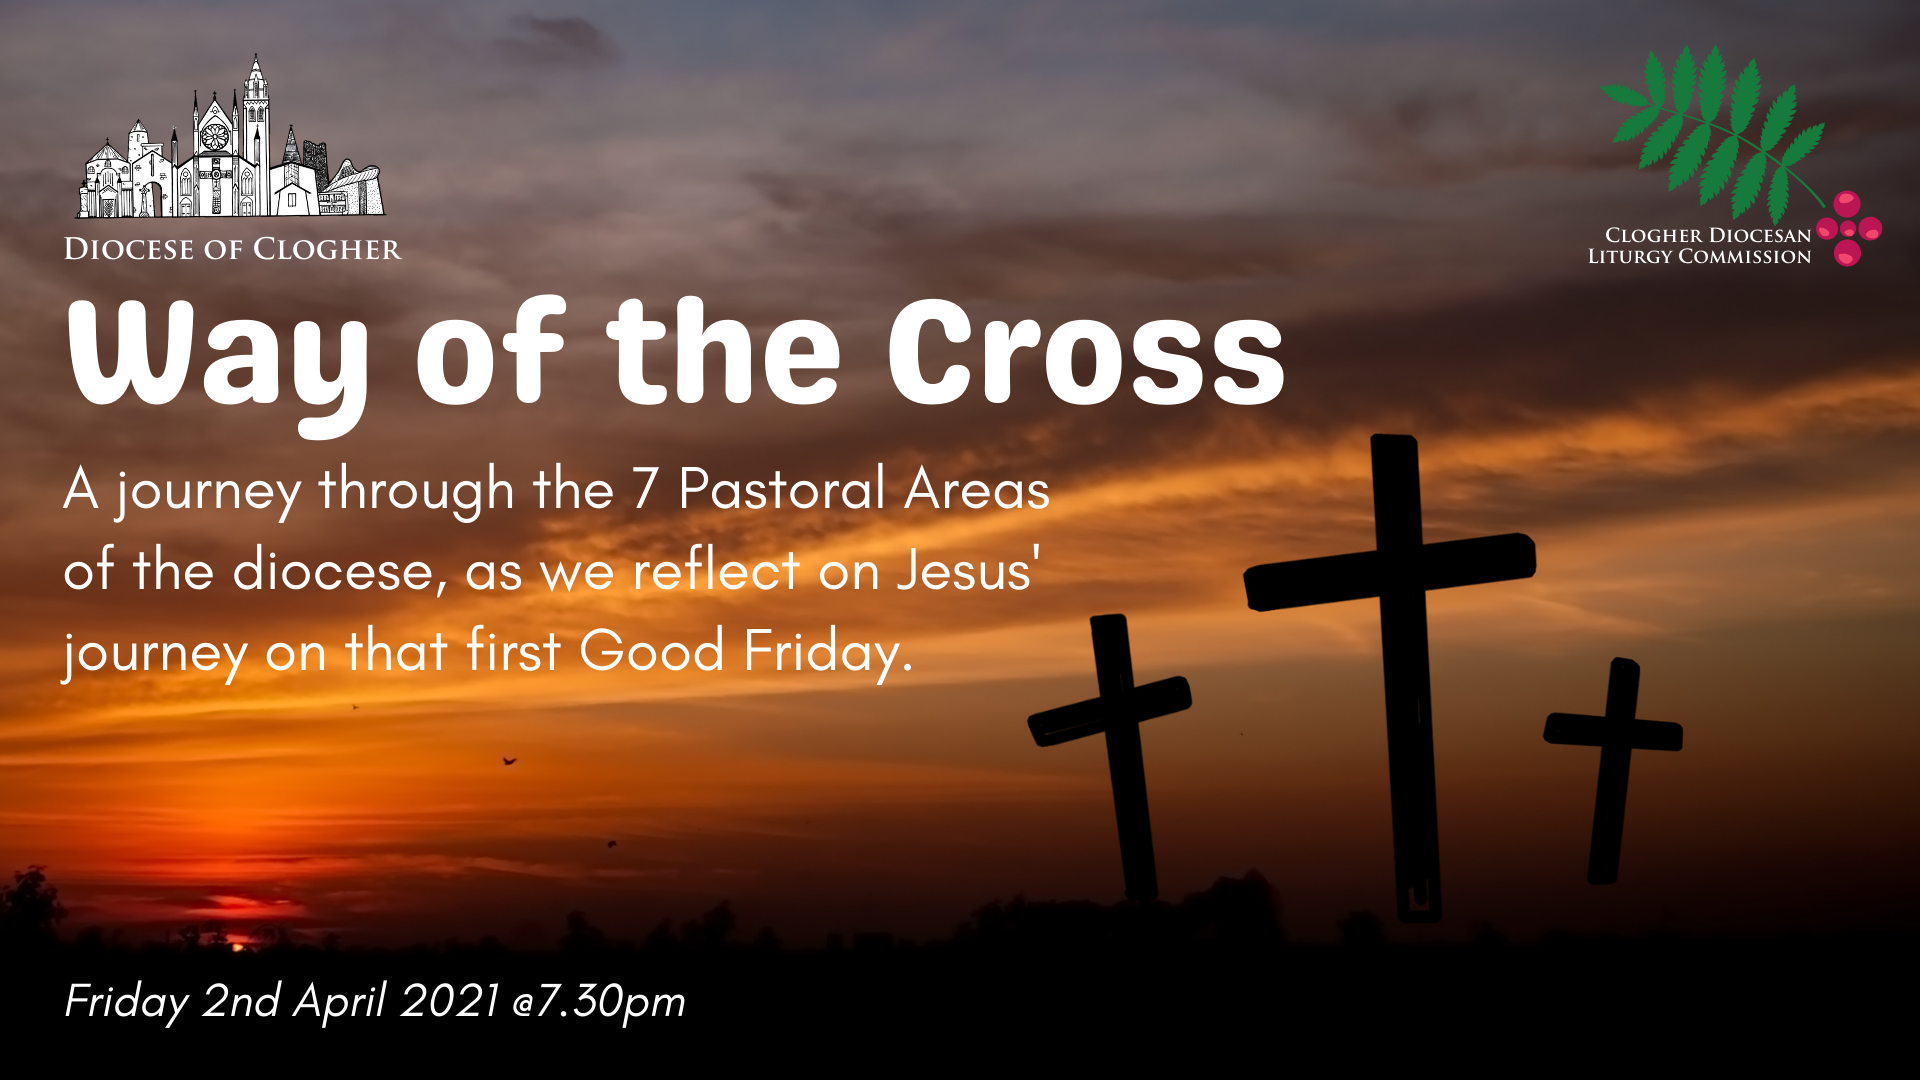 Good Friday - Diocese of Clogher Way of the Cross